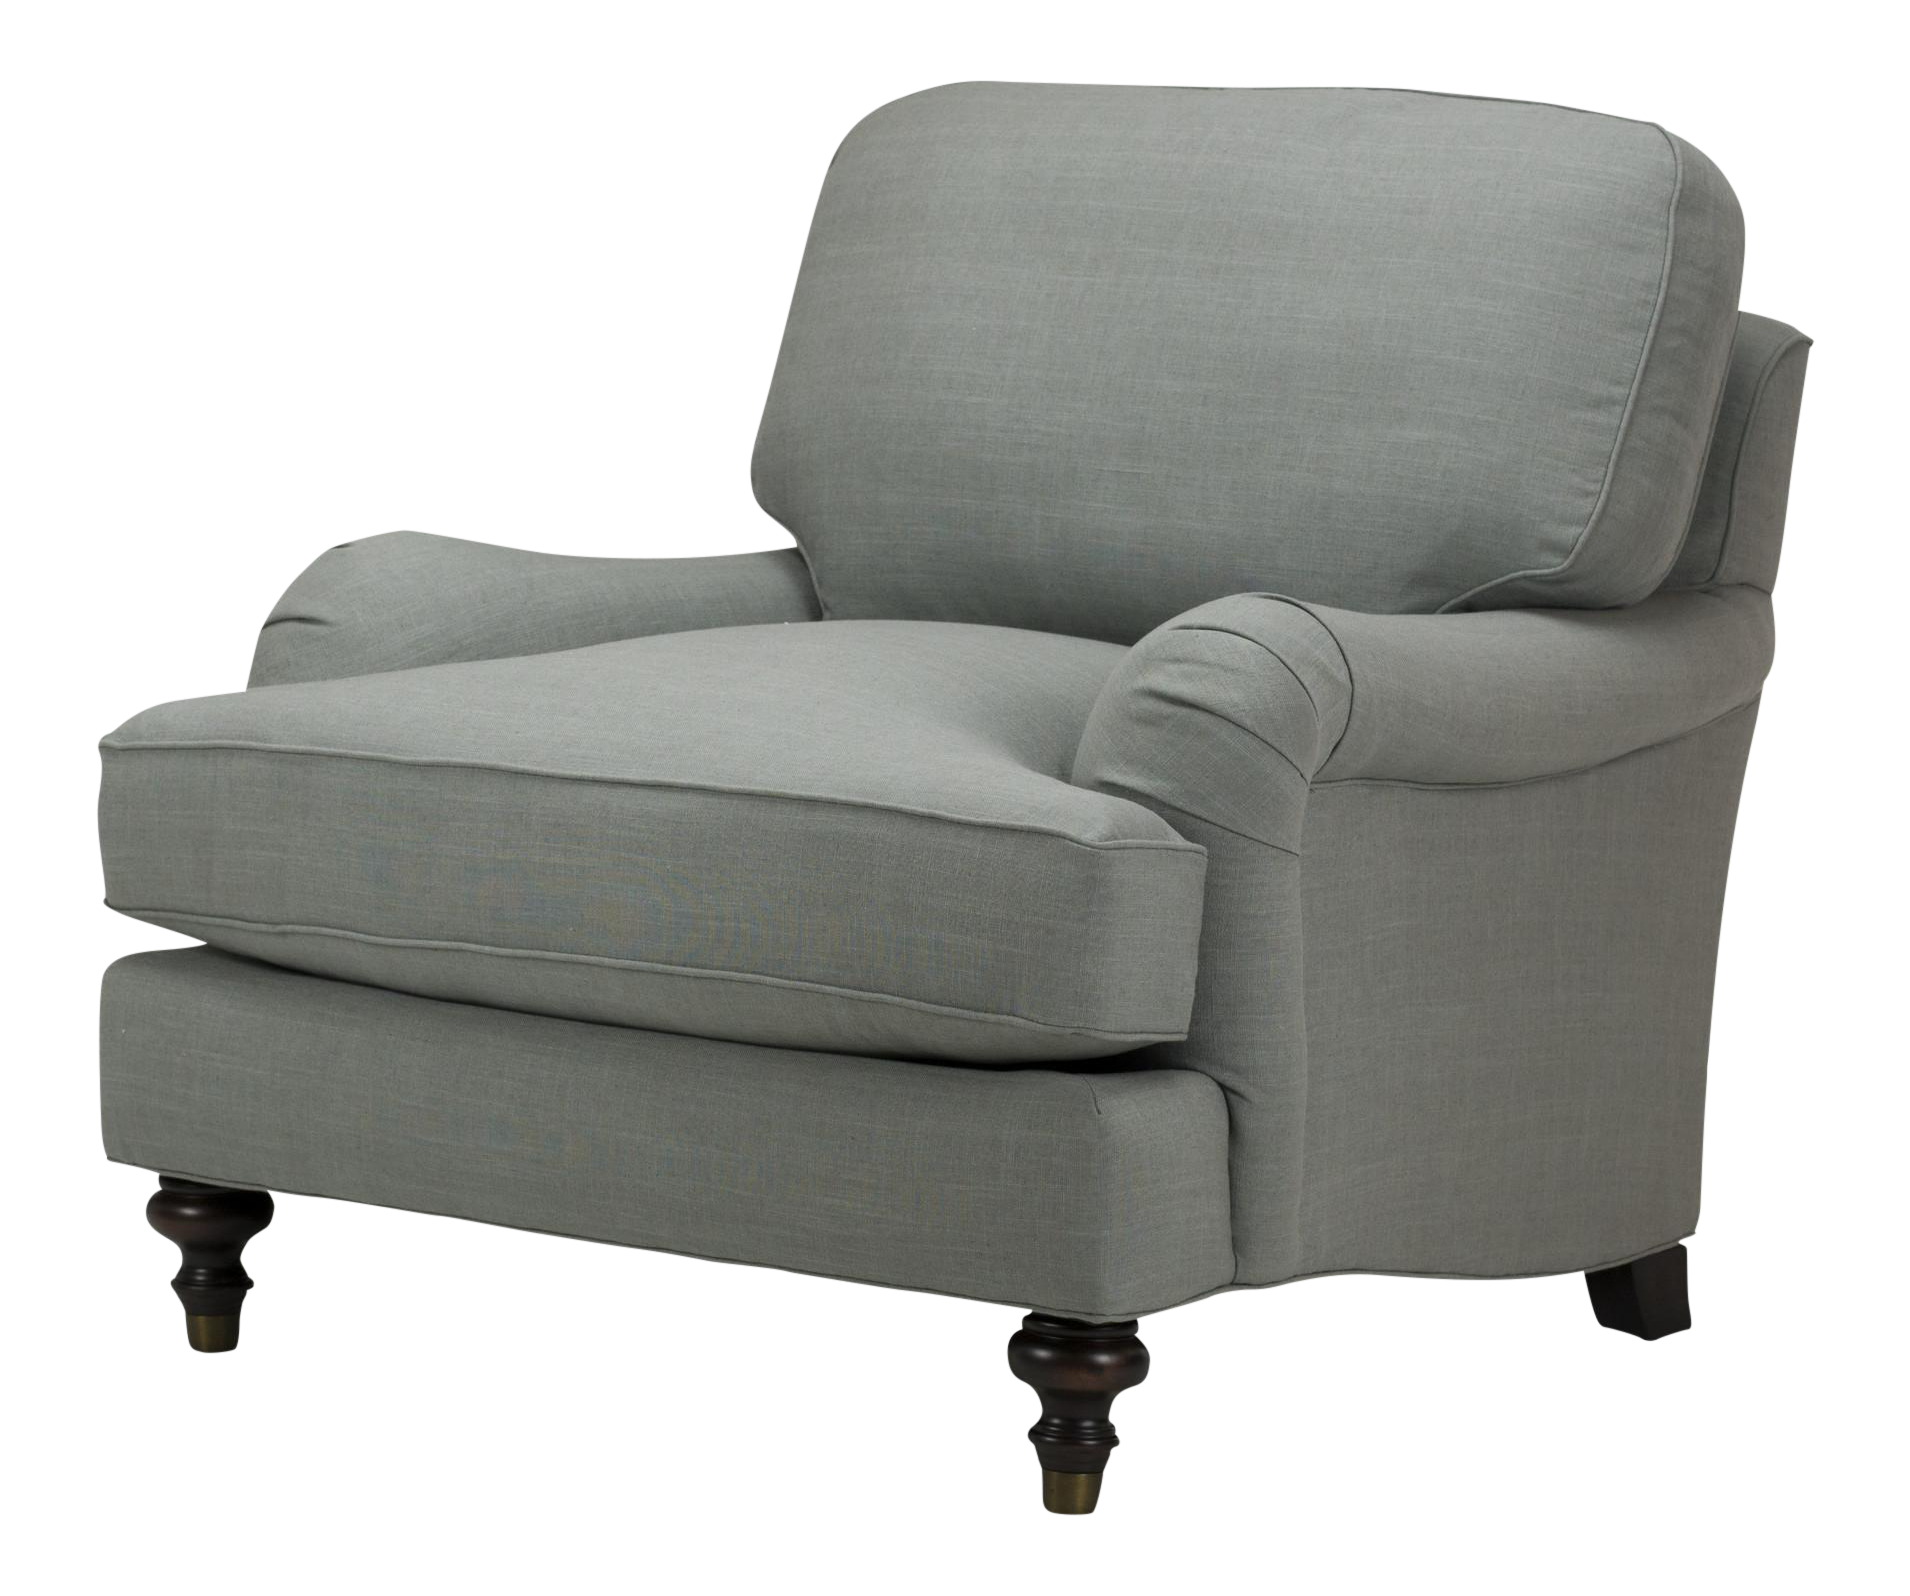 Attractive Spectra Home Gray Traditional English Rolled-Arm Chair | Chairish HL32